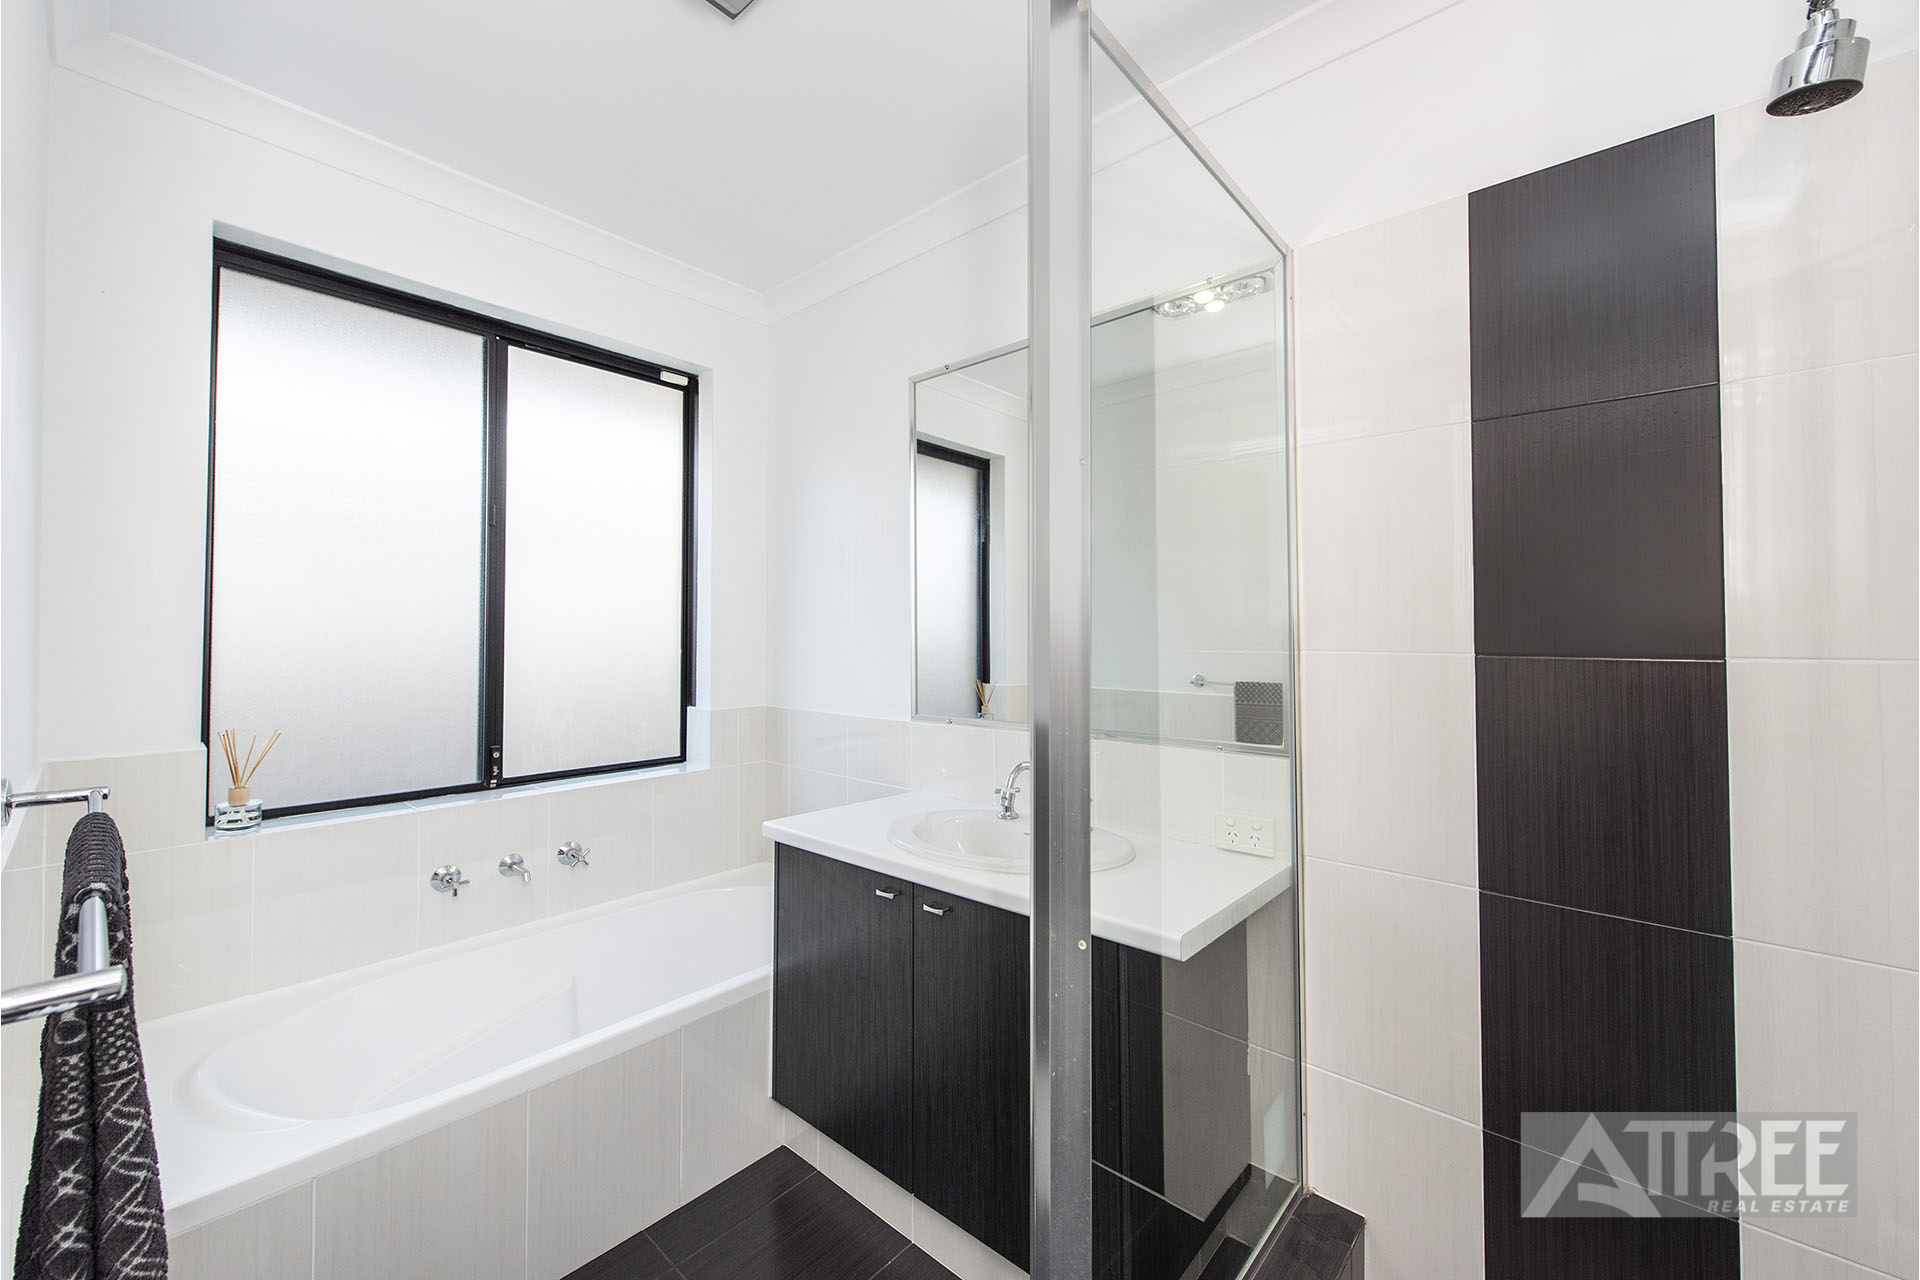 Property for sale in CANNING VALE, 81 Waterfoot Loop : Attree Real Estate